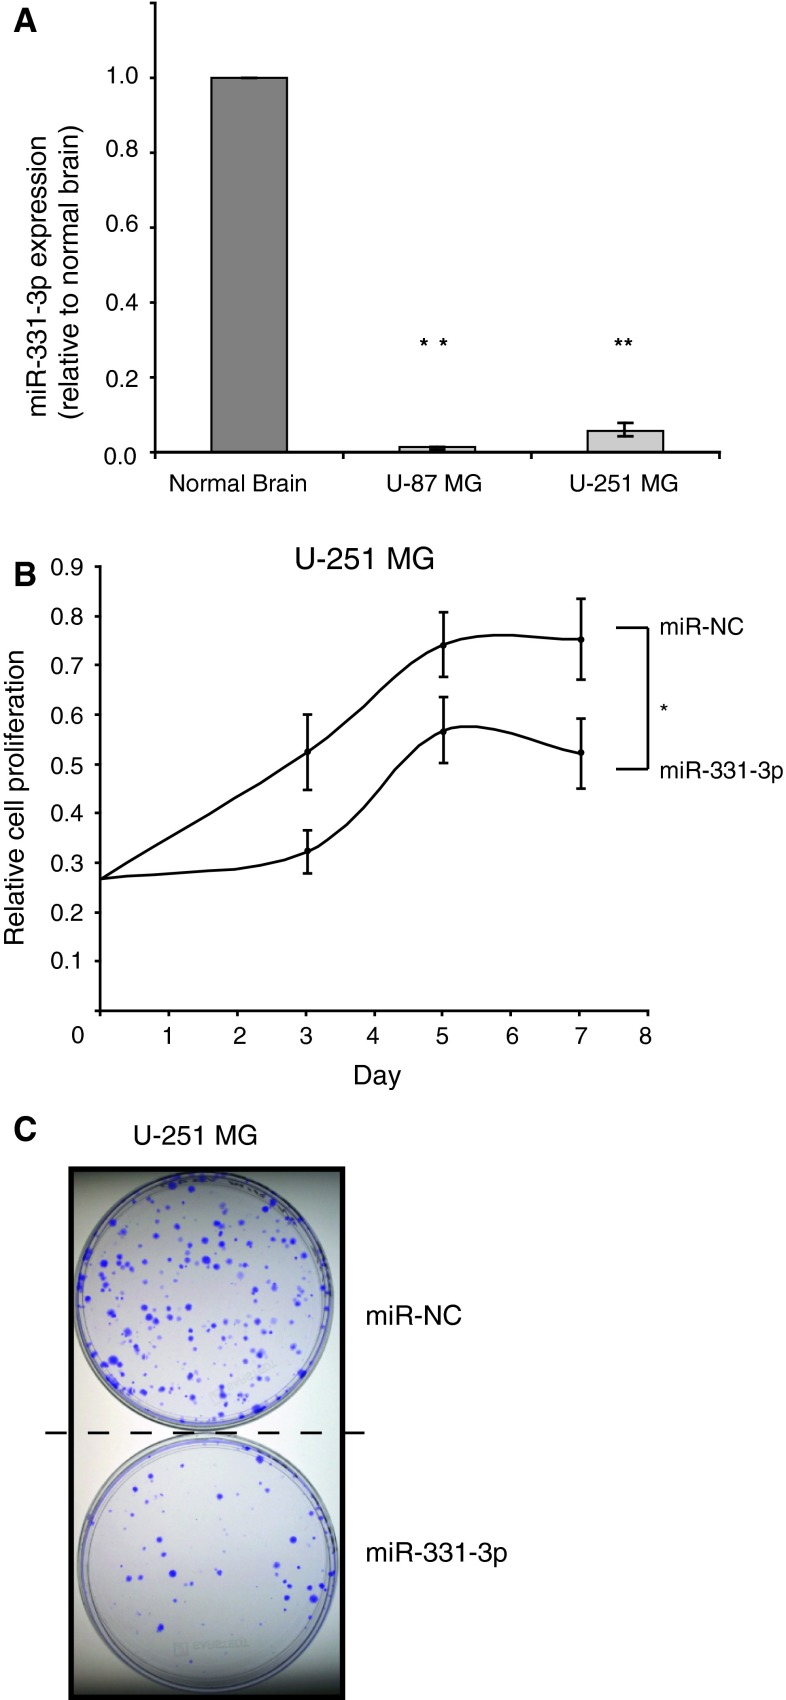 miR-331-3p is down regulated in GBM cell lines compared to normal brain and inhibits cell proliferation and clonogenicity. a TaqMan <t>RT-qPCR</t> analysis of miR-331-3p expression in U-87 MG and U-251 MG cells relative to normal brain <t>RNA.</t> b Cell titre assay of U-251 MG cell proliferation following transient transfection with either miR-331-3p or negative control miRNA (miR-NC). c Clonogenicity assay of U-251 MG cells 12 days following transient transfection with either miR-331-3p or miR-NC. Error bars represent standard deviations; * p